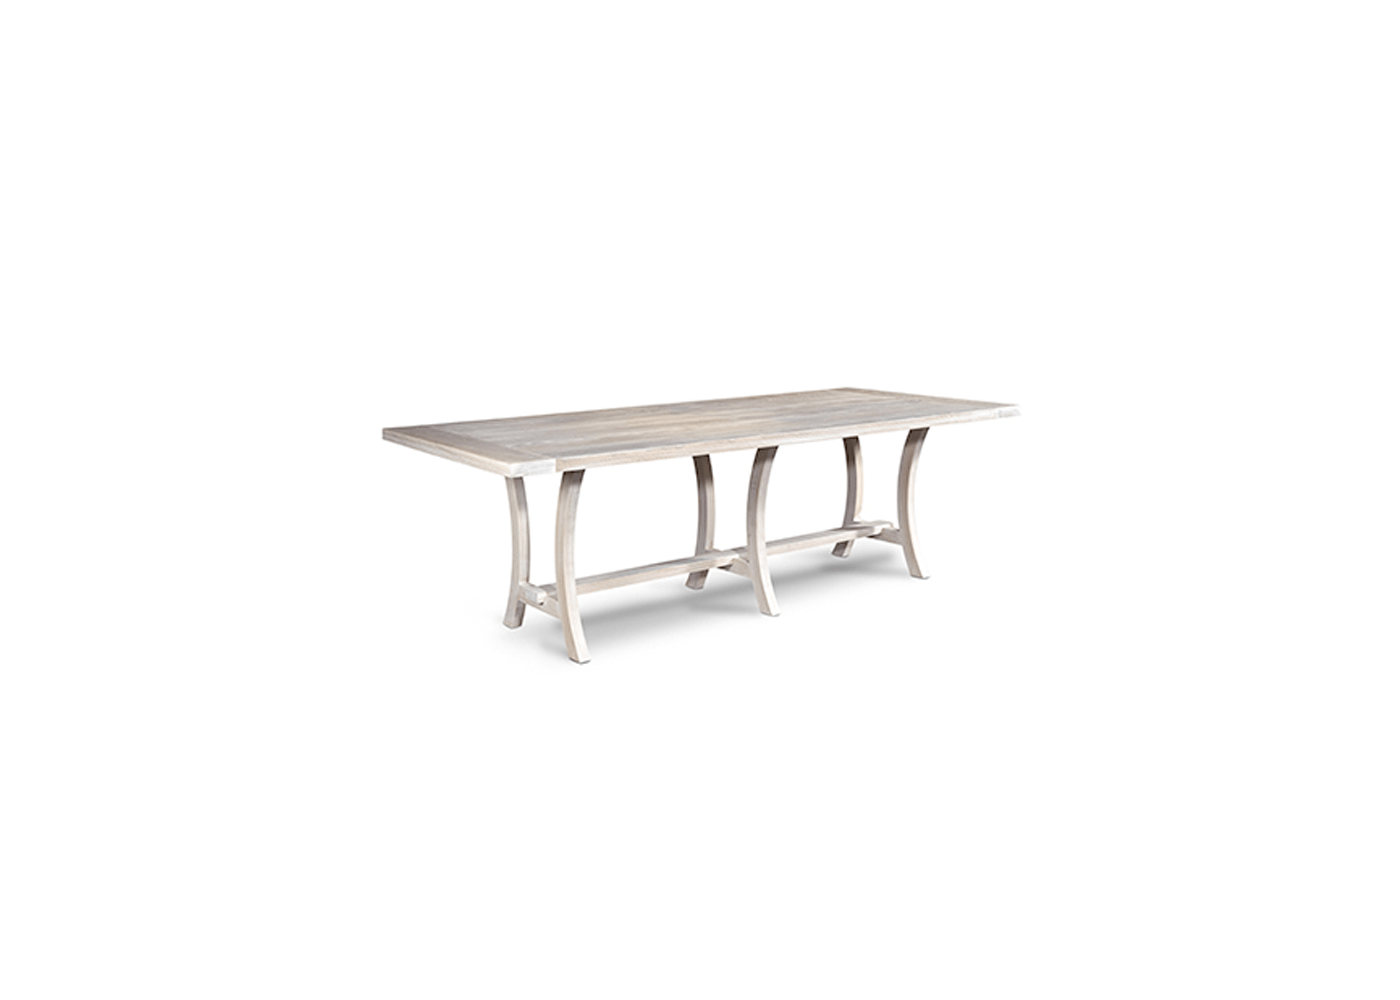 Dining Tables Ottawa Polanco Furniture Store Ottawa Interior Decor Solutions